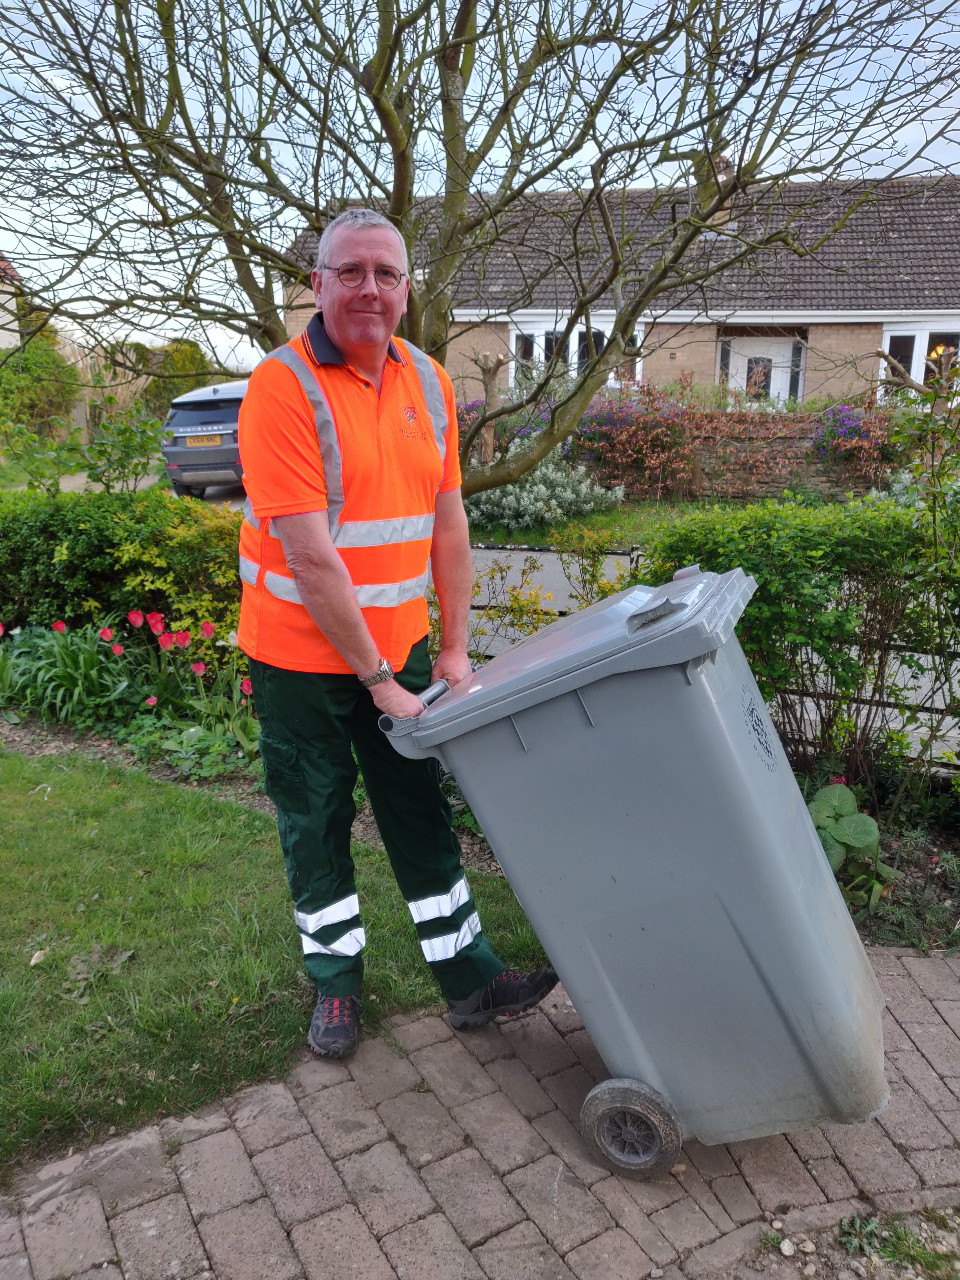 Cllr Dr Moseley recycles